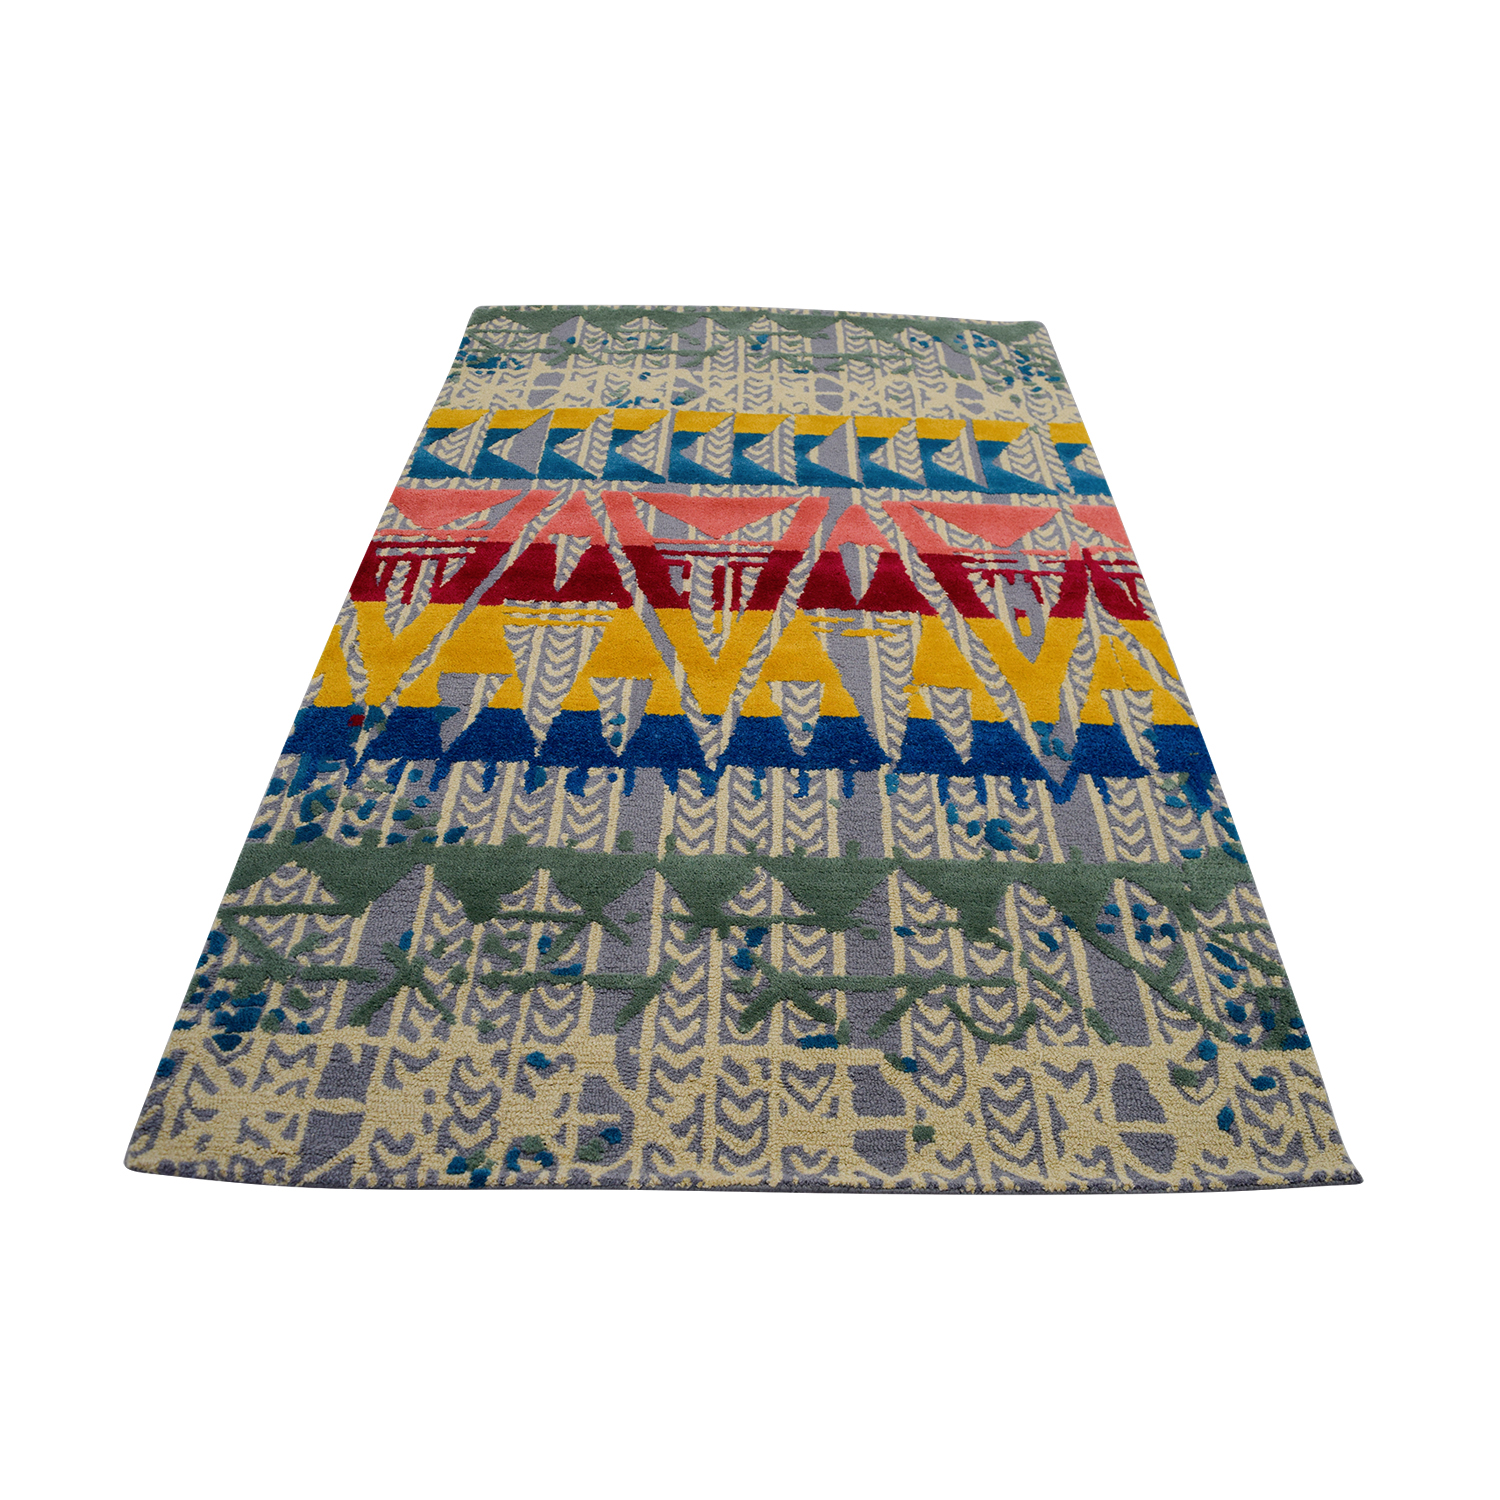 Obeetee Obeetee Hand Tufted Multi-Colored Wool Rug Decor